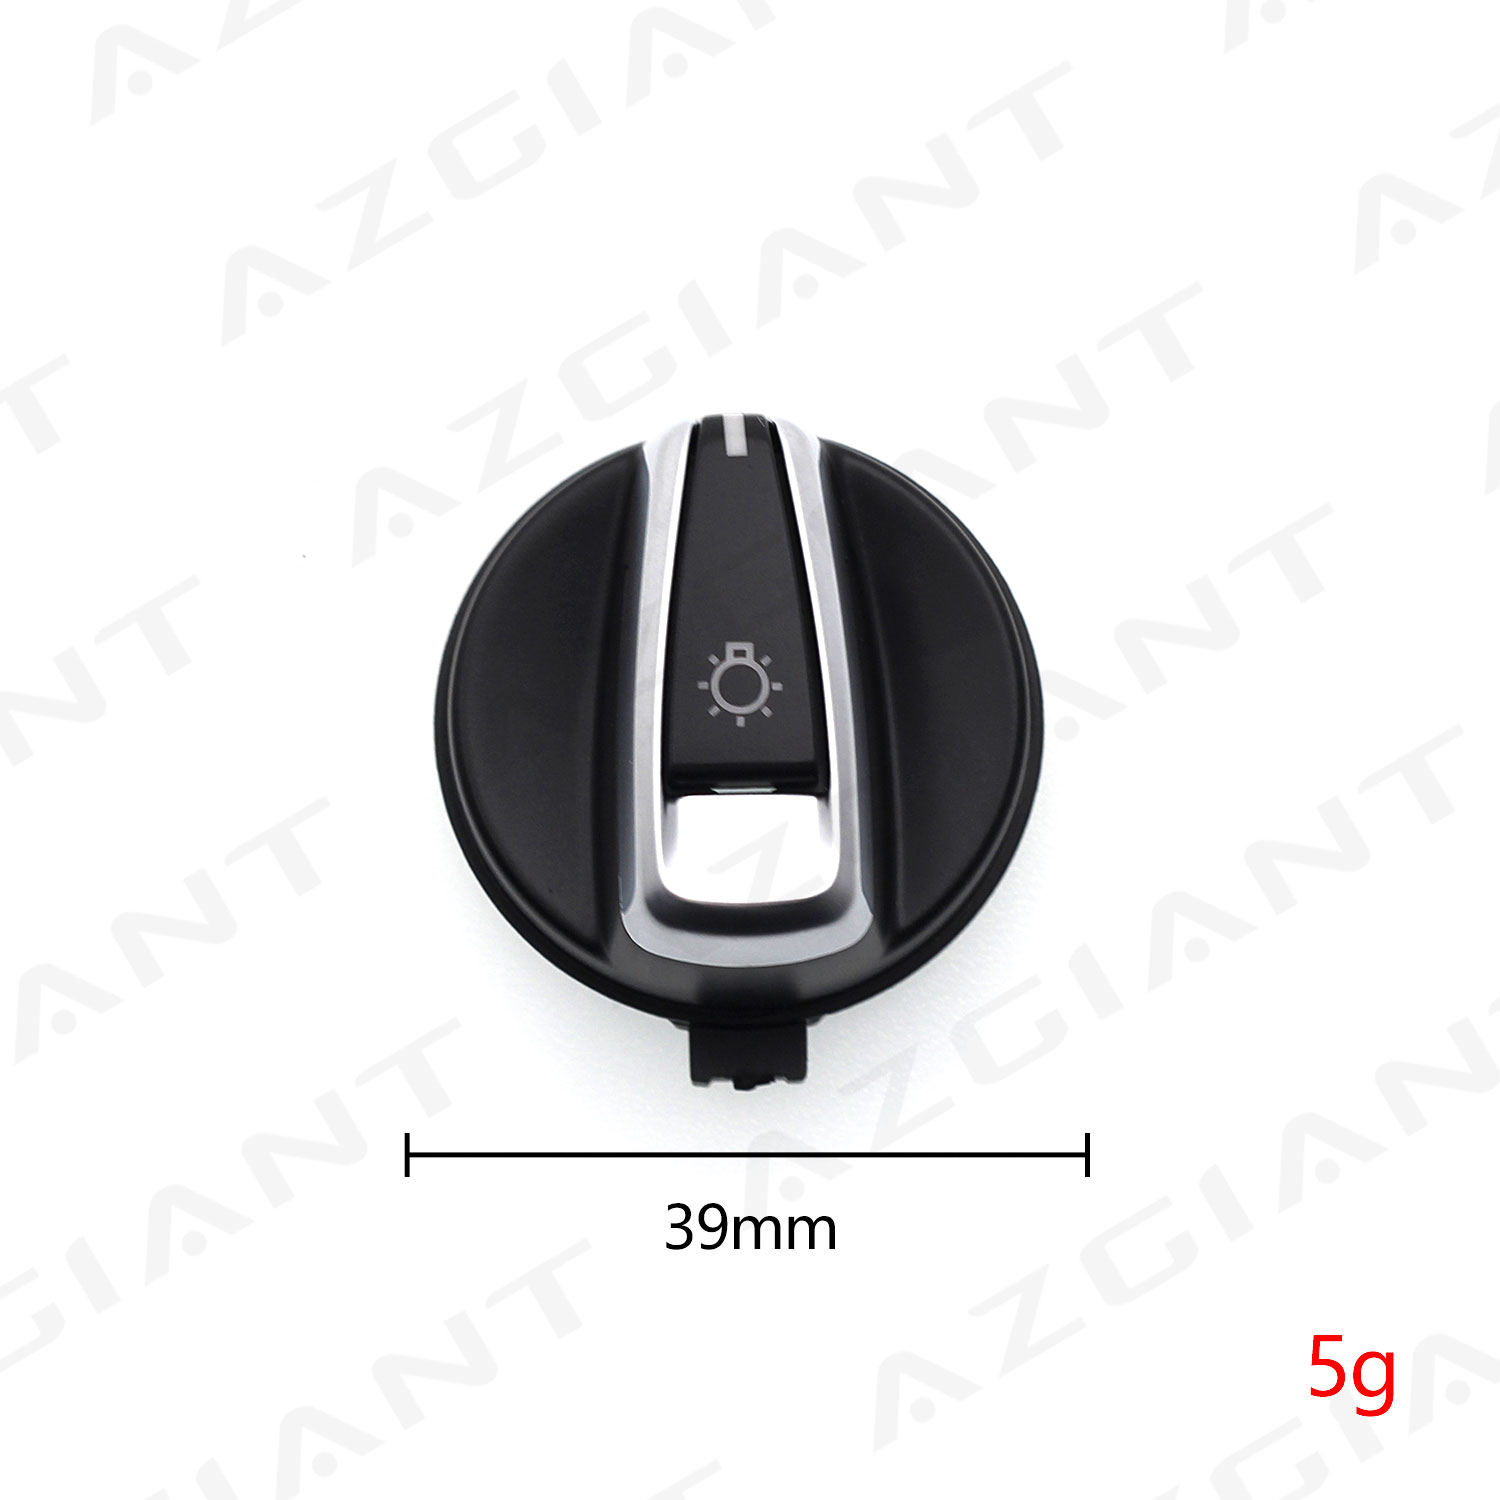 1pc Car Front Headlight Switch Rotation Button for BMW 1 Series 3 Series E90 318i 320i 325i 330i Headlight Switch Knob Button image